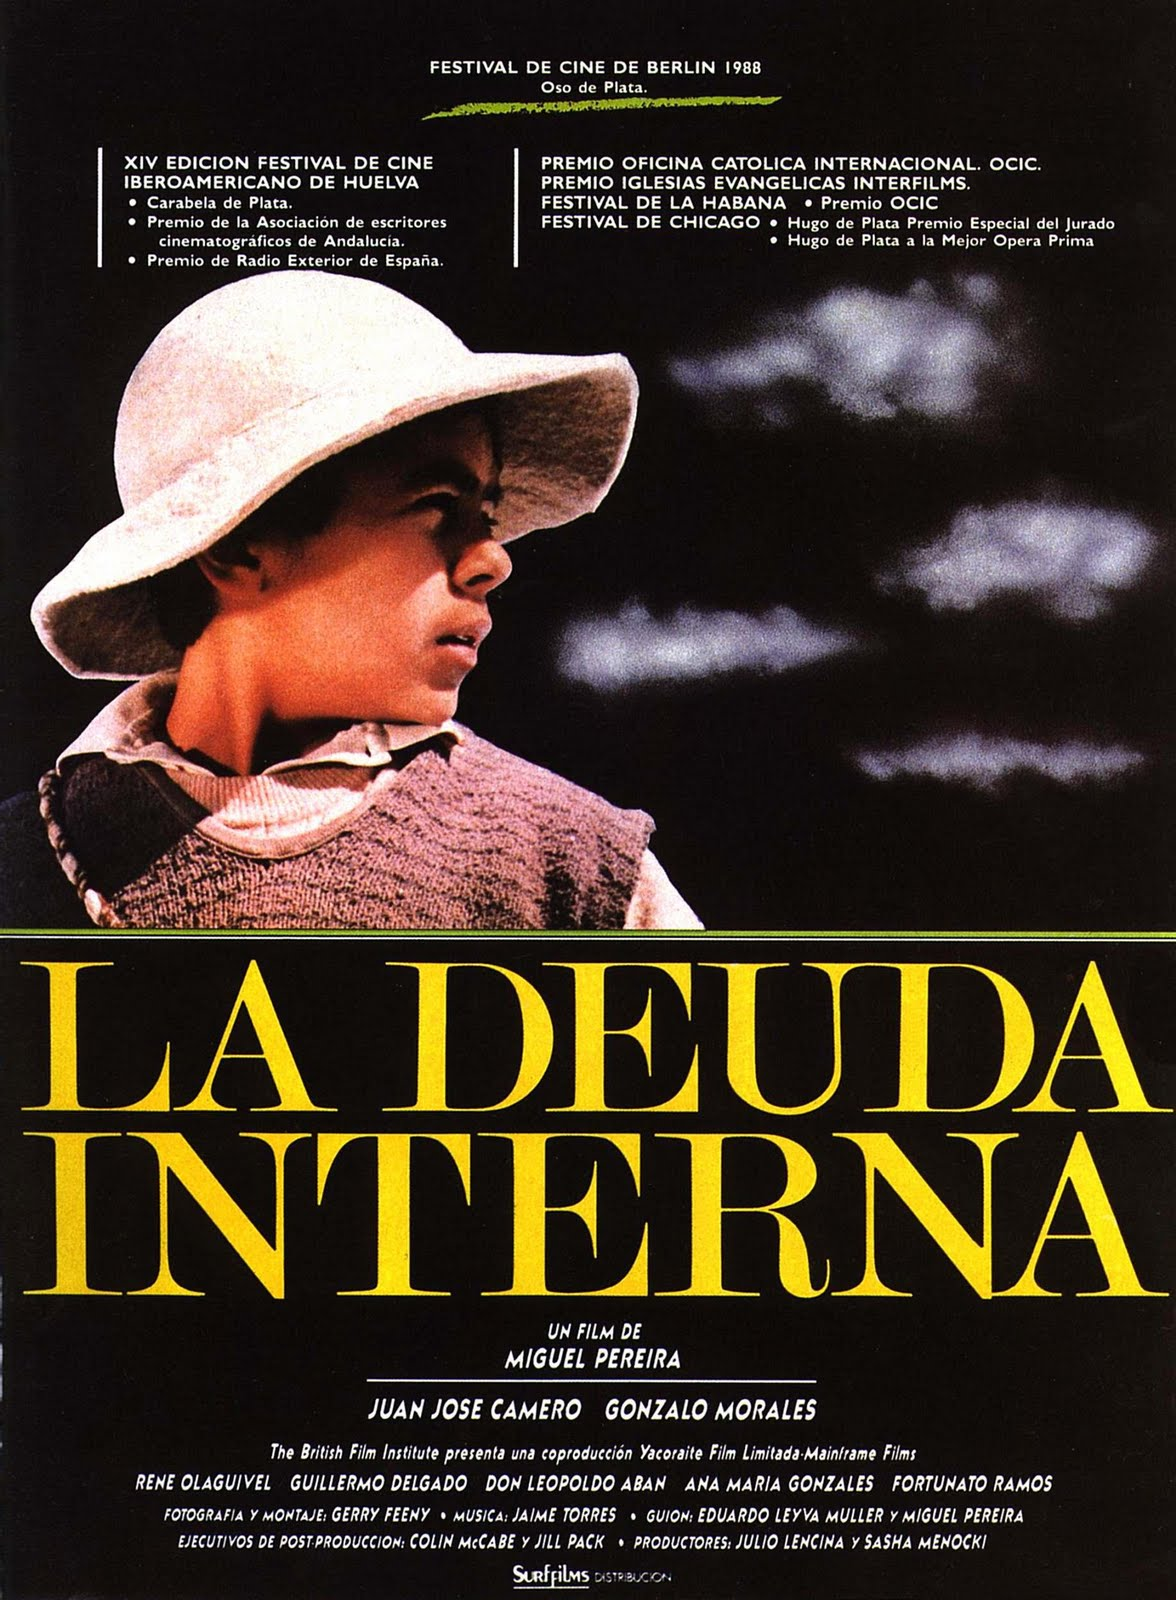 La deuda interna movie